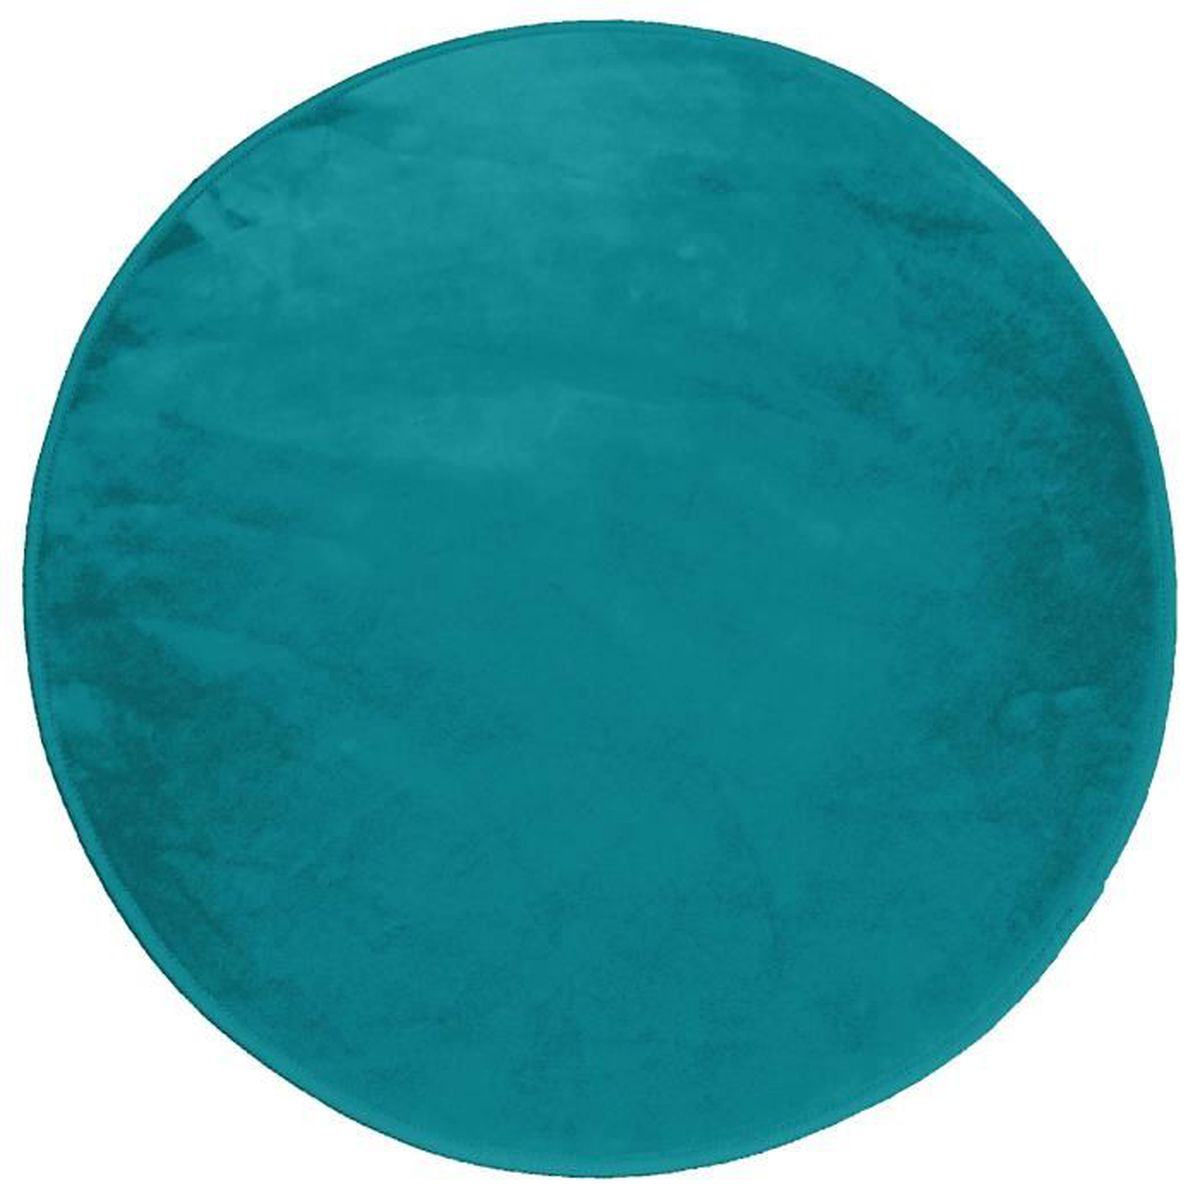 tapis rond 0 90 cm velours uni louna bleu lagon achat. Black Bedroom Furniture Sets. Home Design Ideas